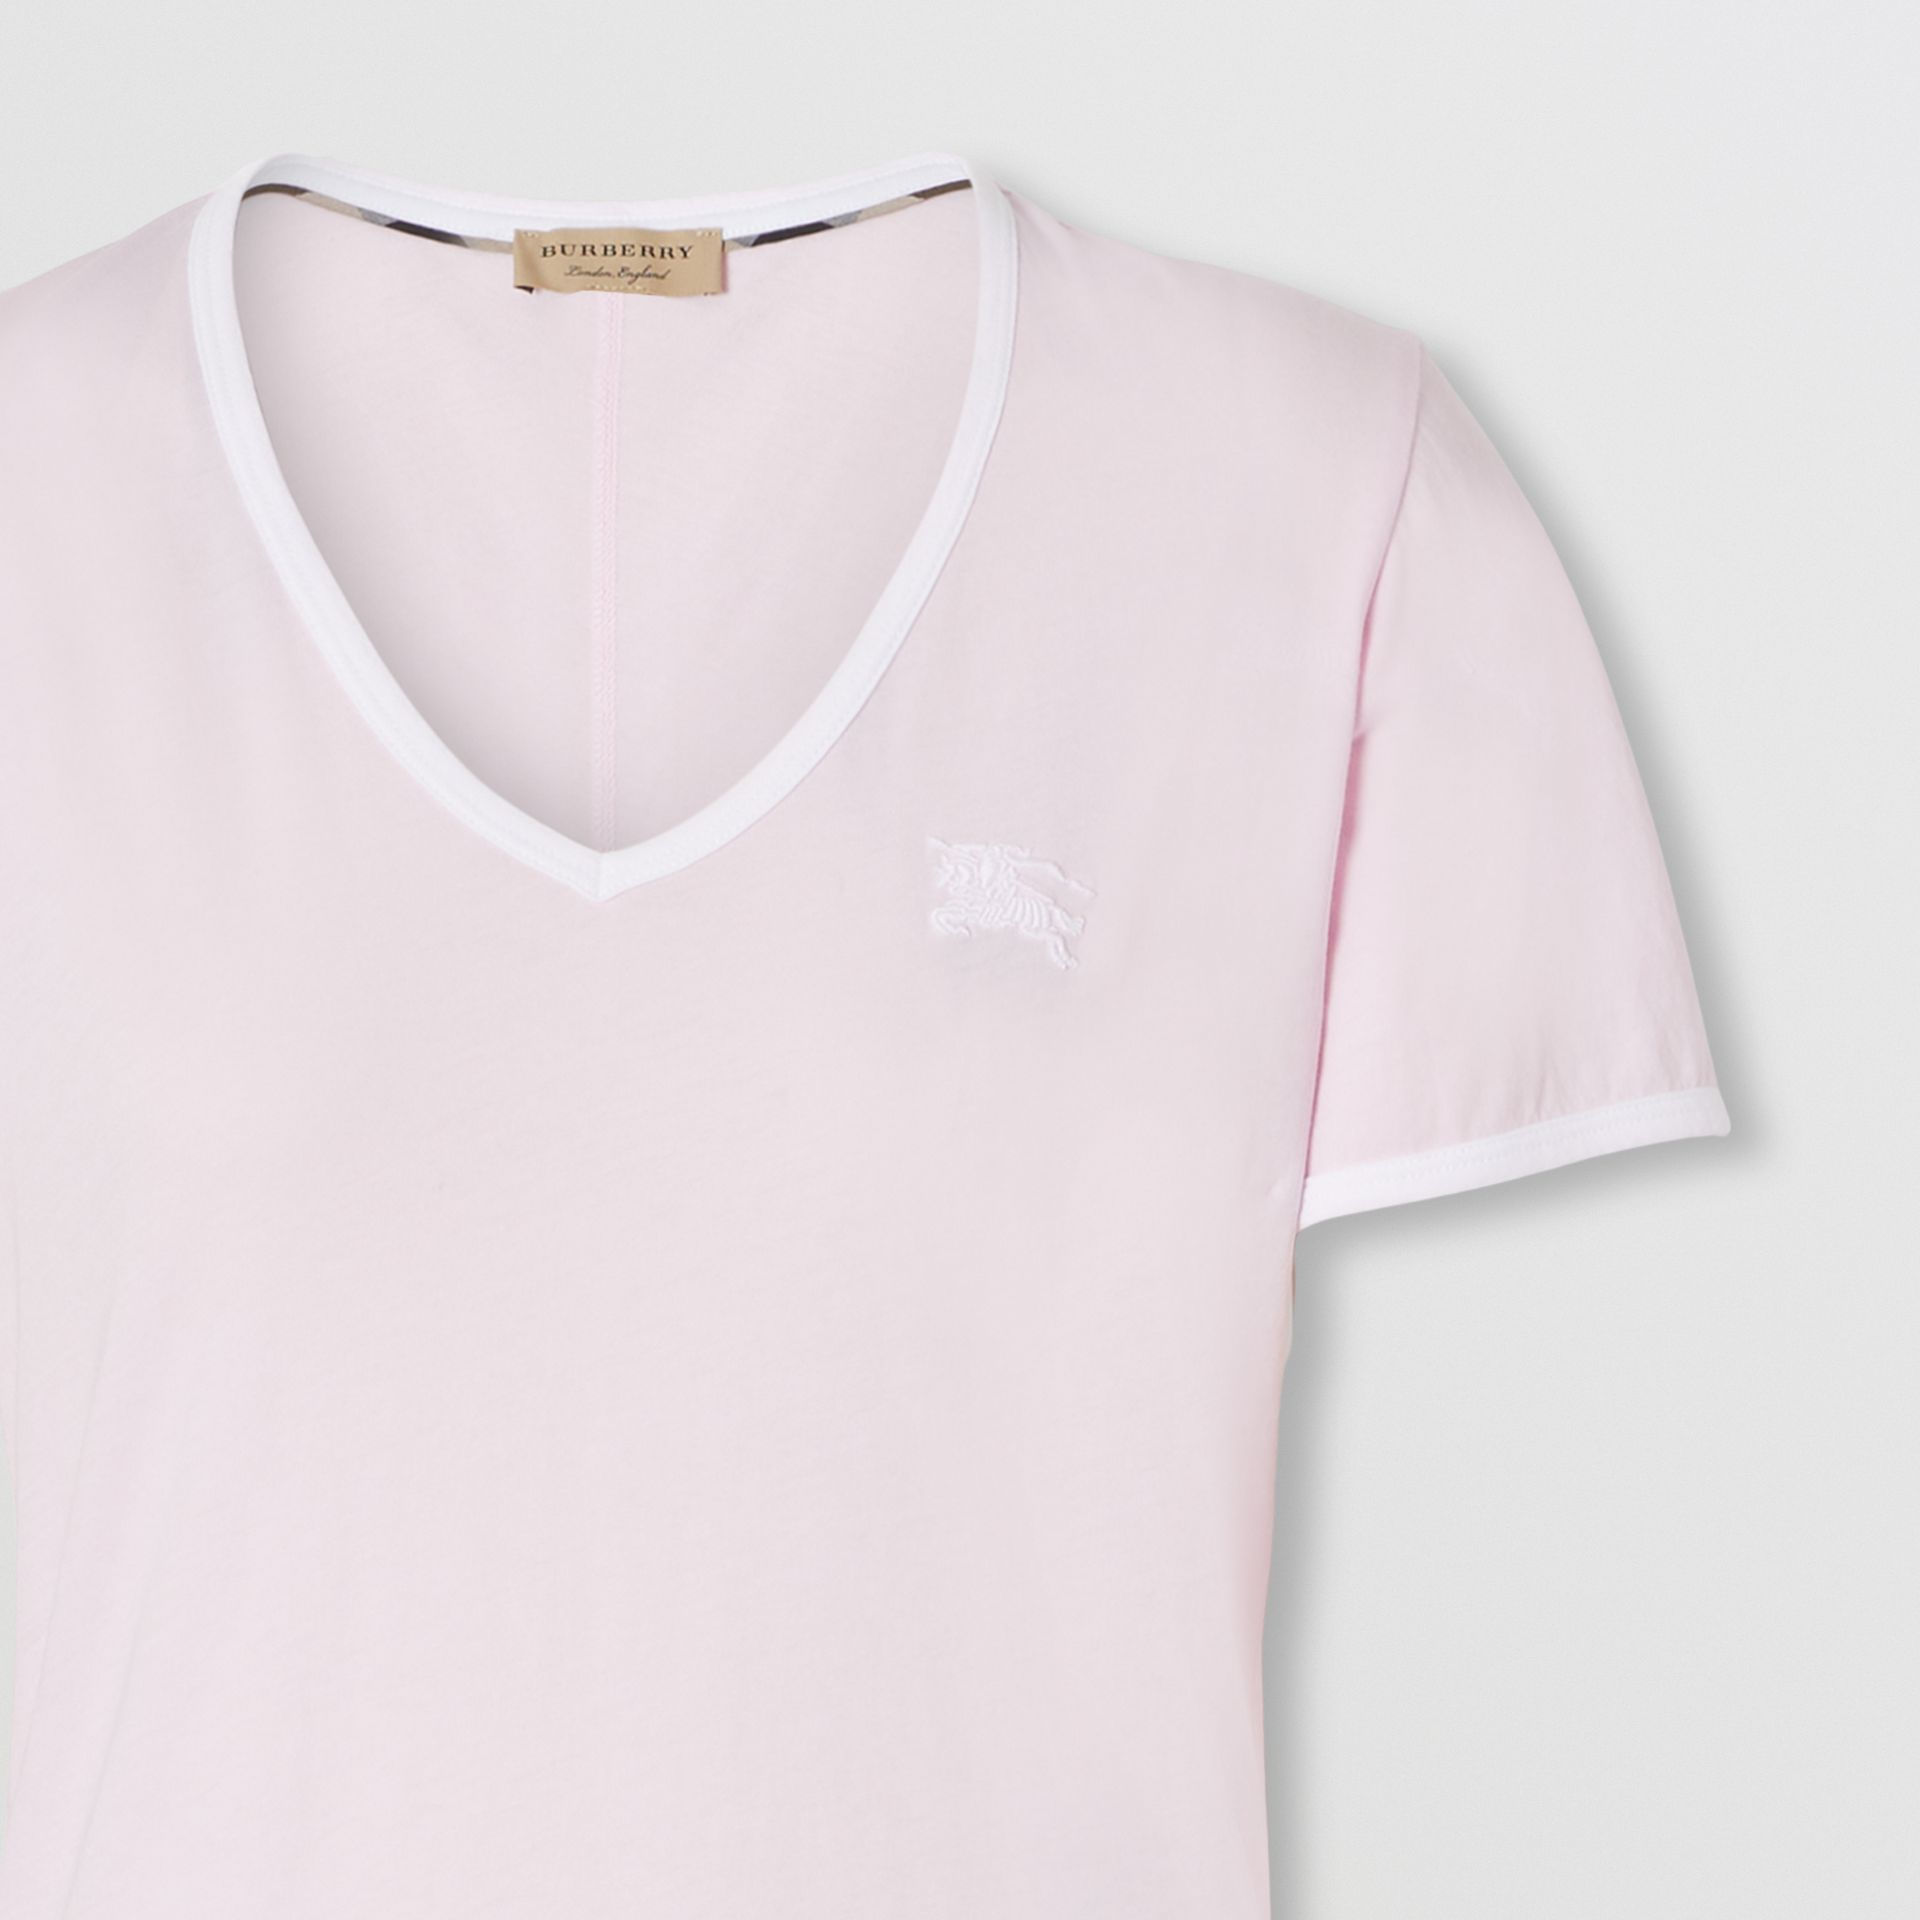 Embroidered EKD Cotton T-shirt in City Pink - Women | Burberry Hong Kong S.A.R. - gallery image 1